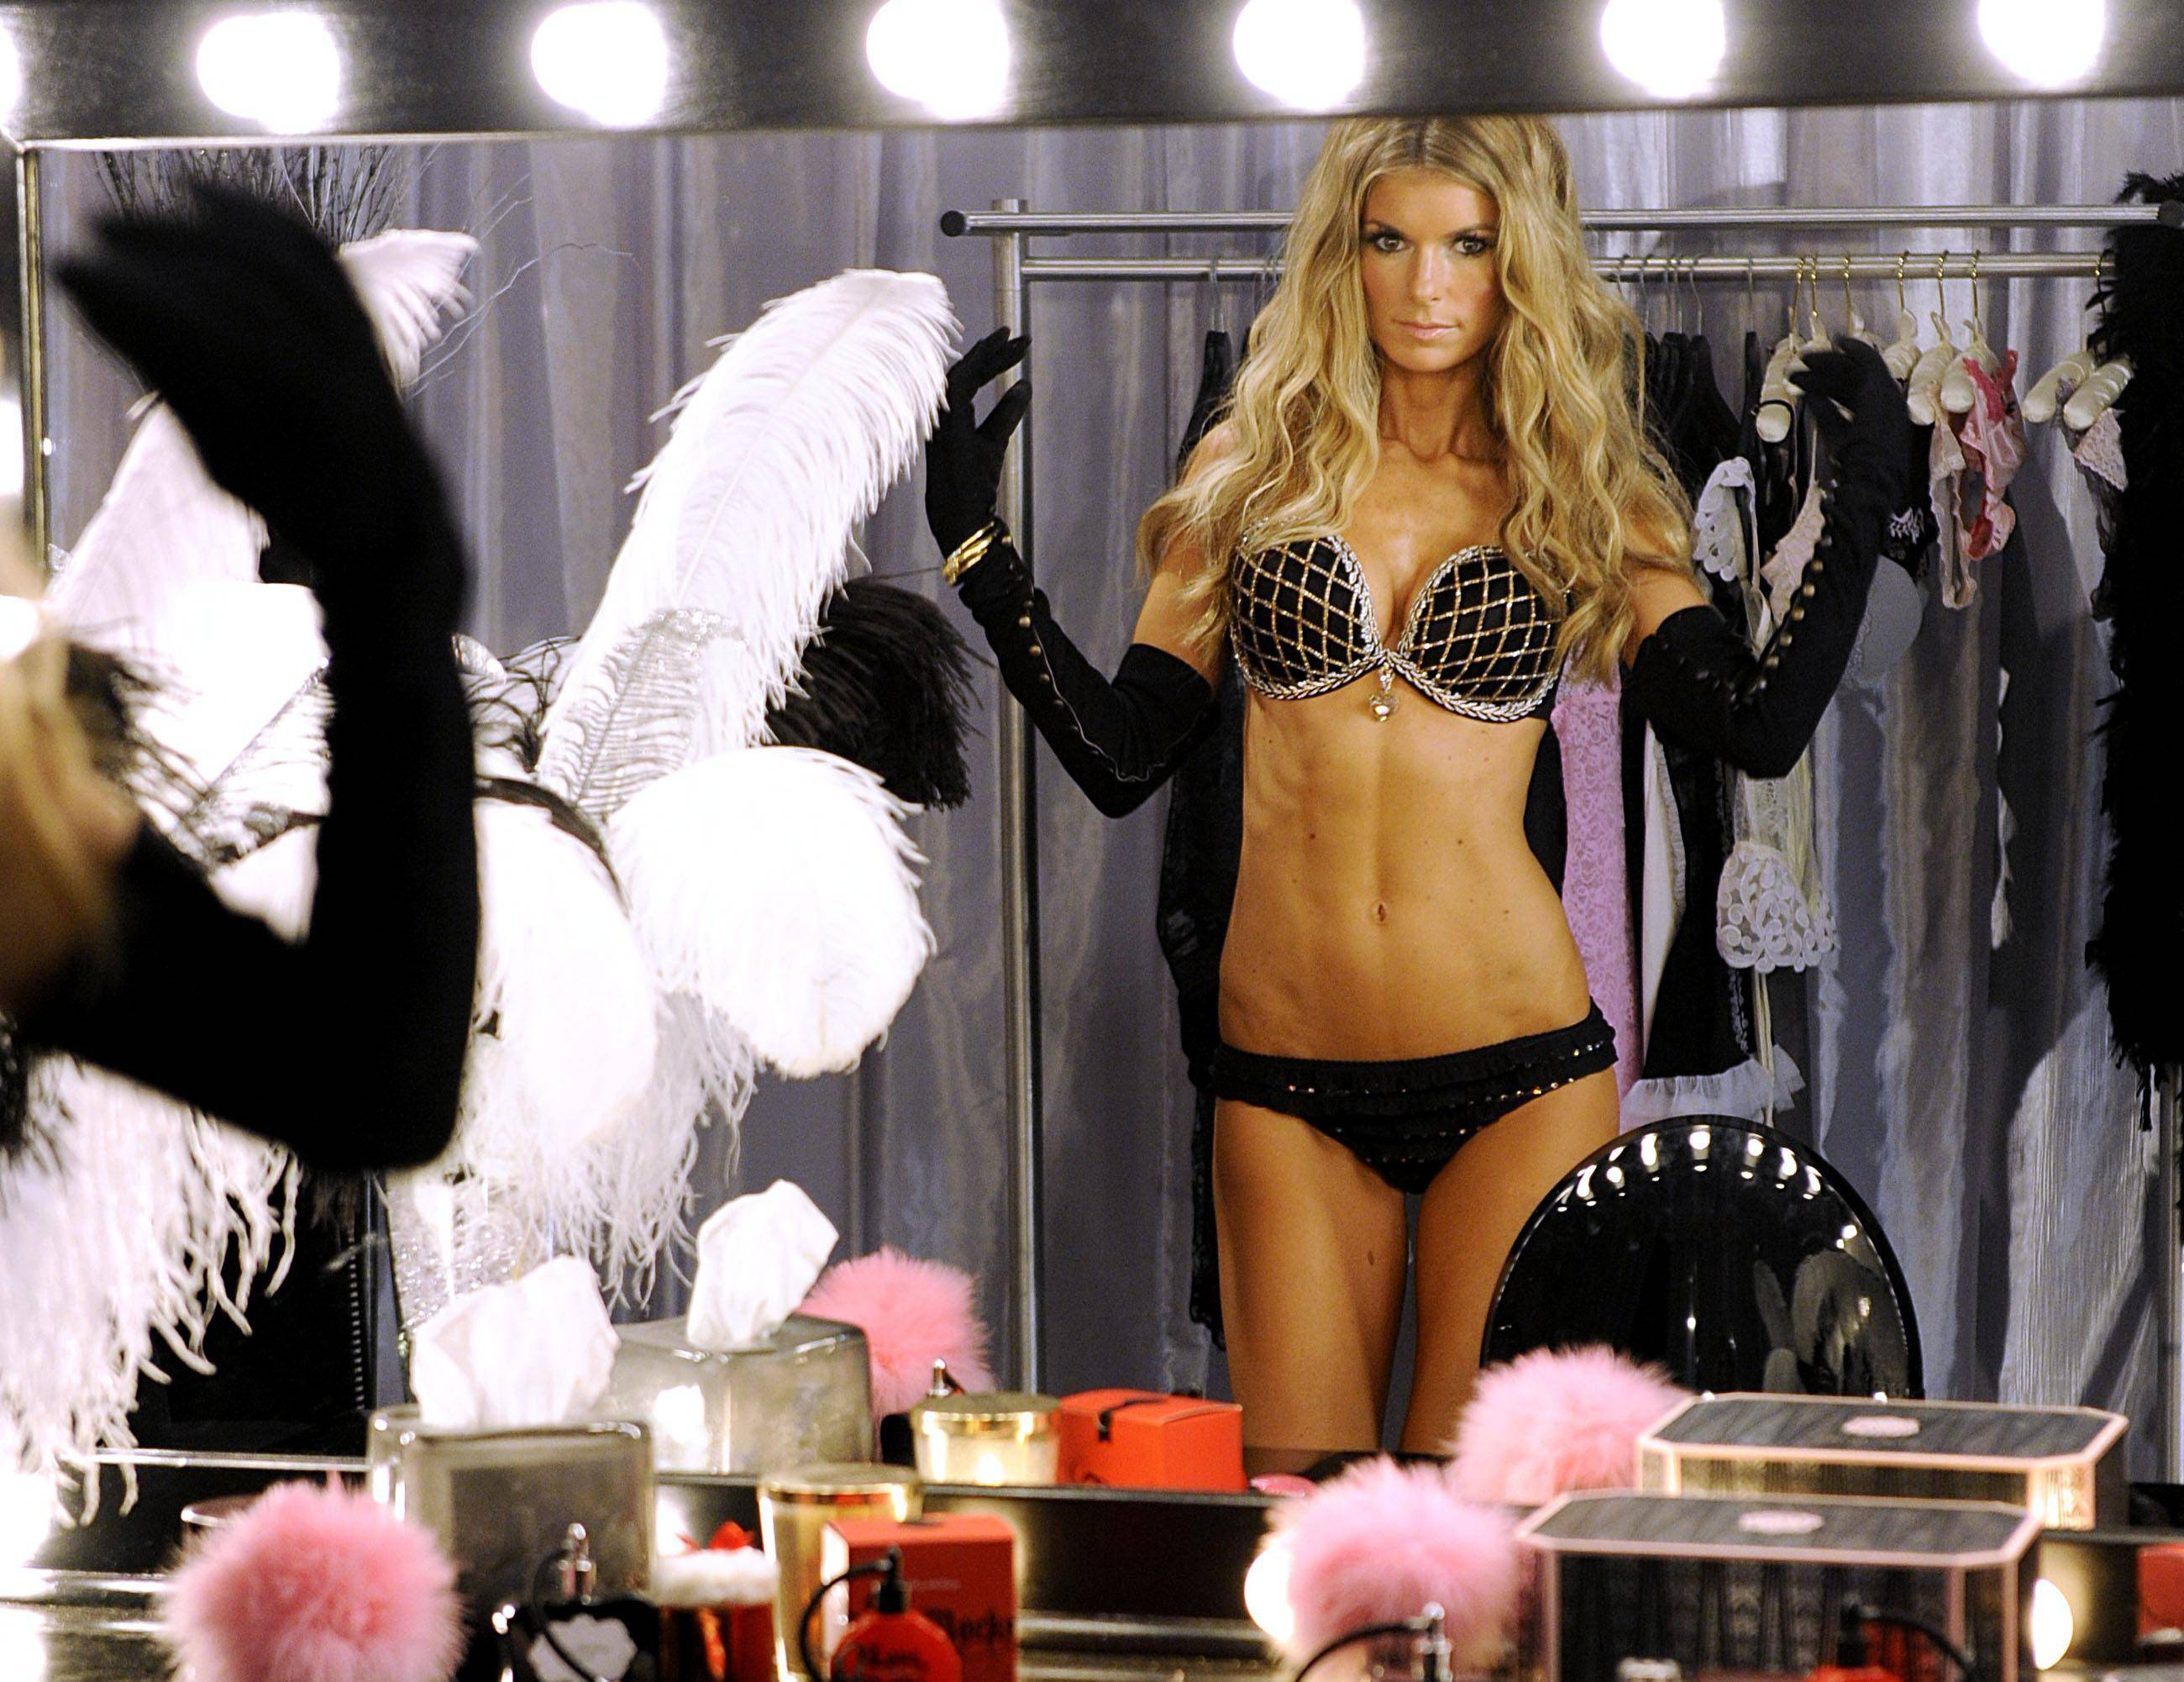 72642_marisa_miller_victorias_secret_fashion_Show_backstage-7_122_836lo.jpg